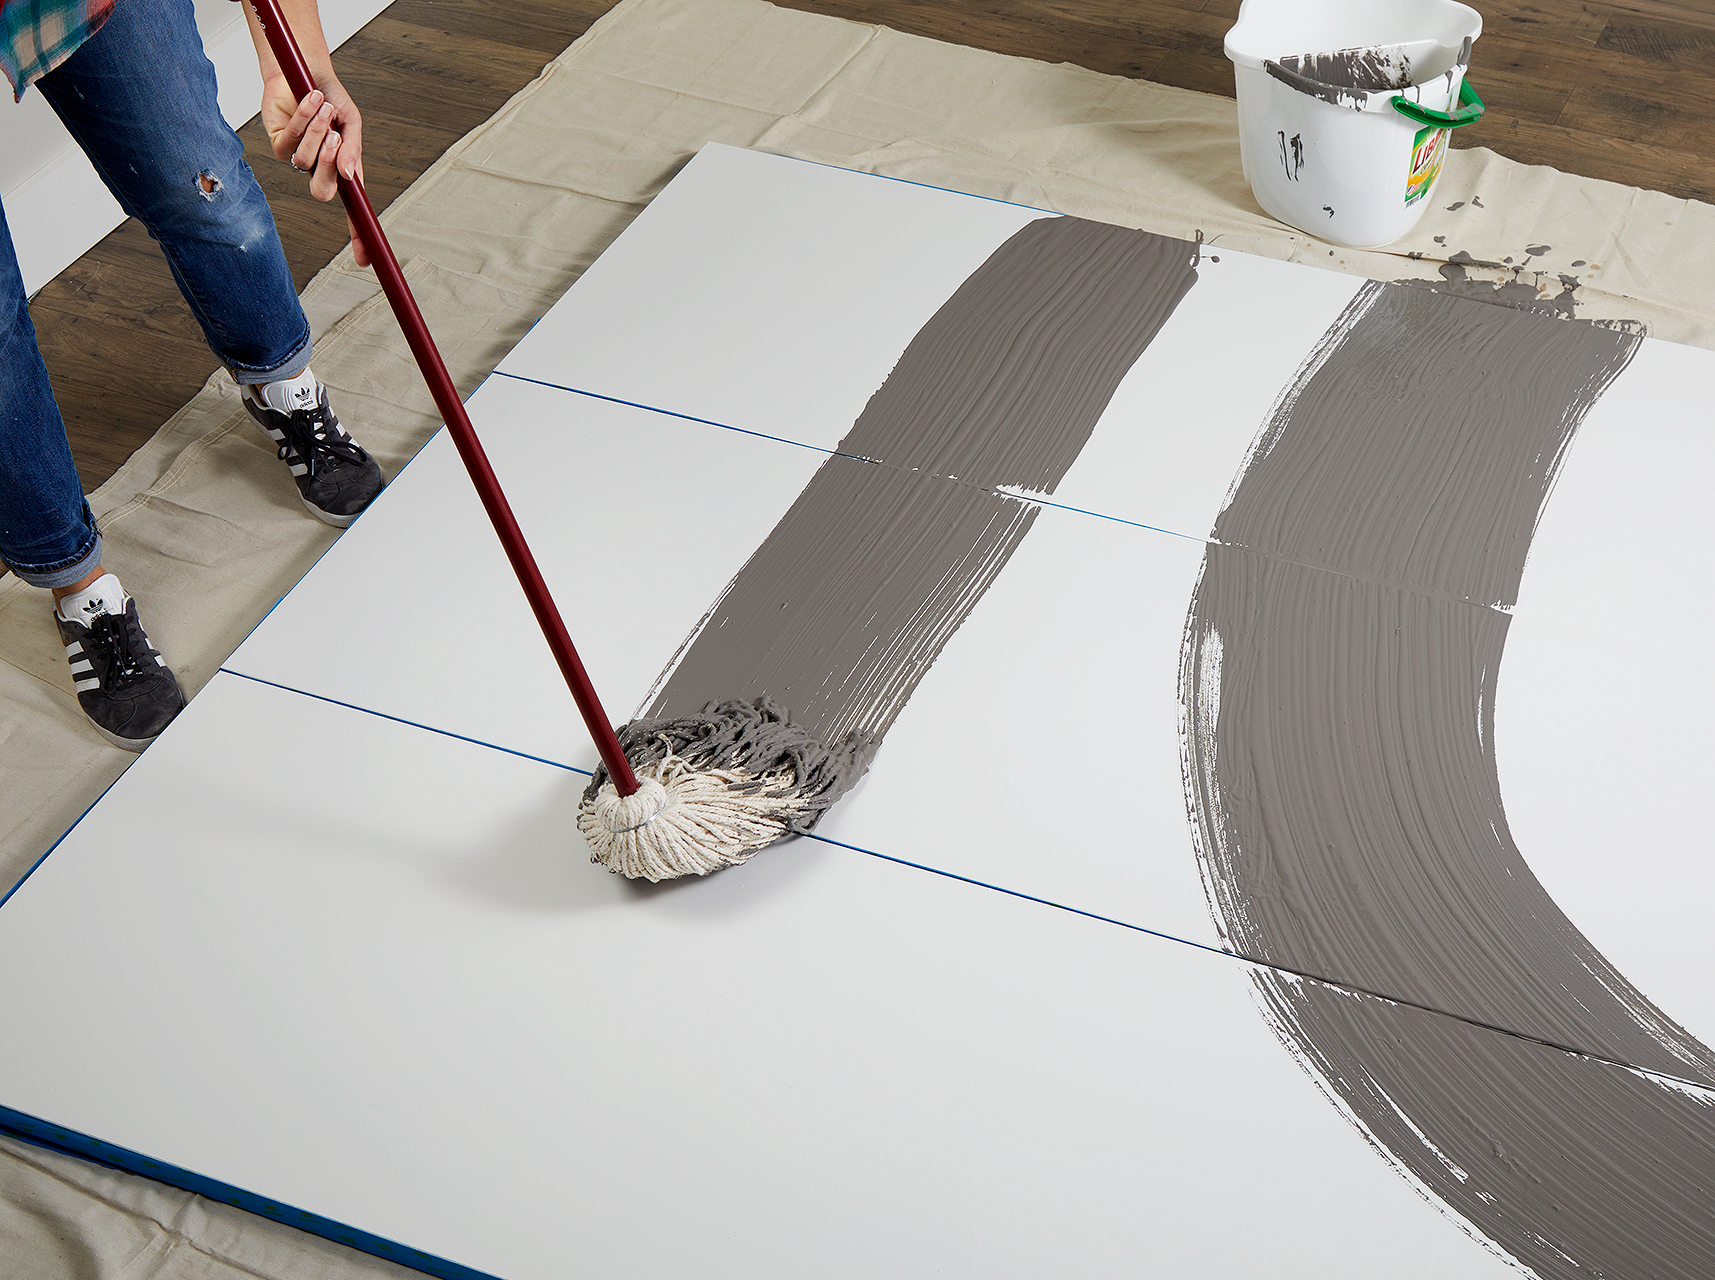 apply lighter-hued paint with mop first